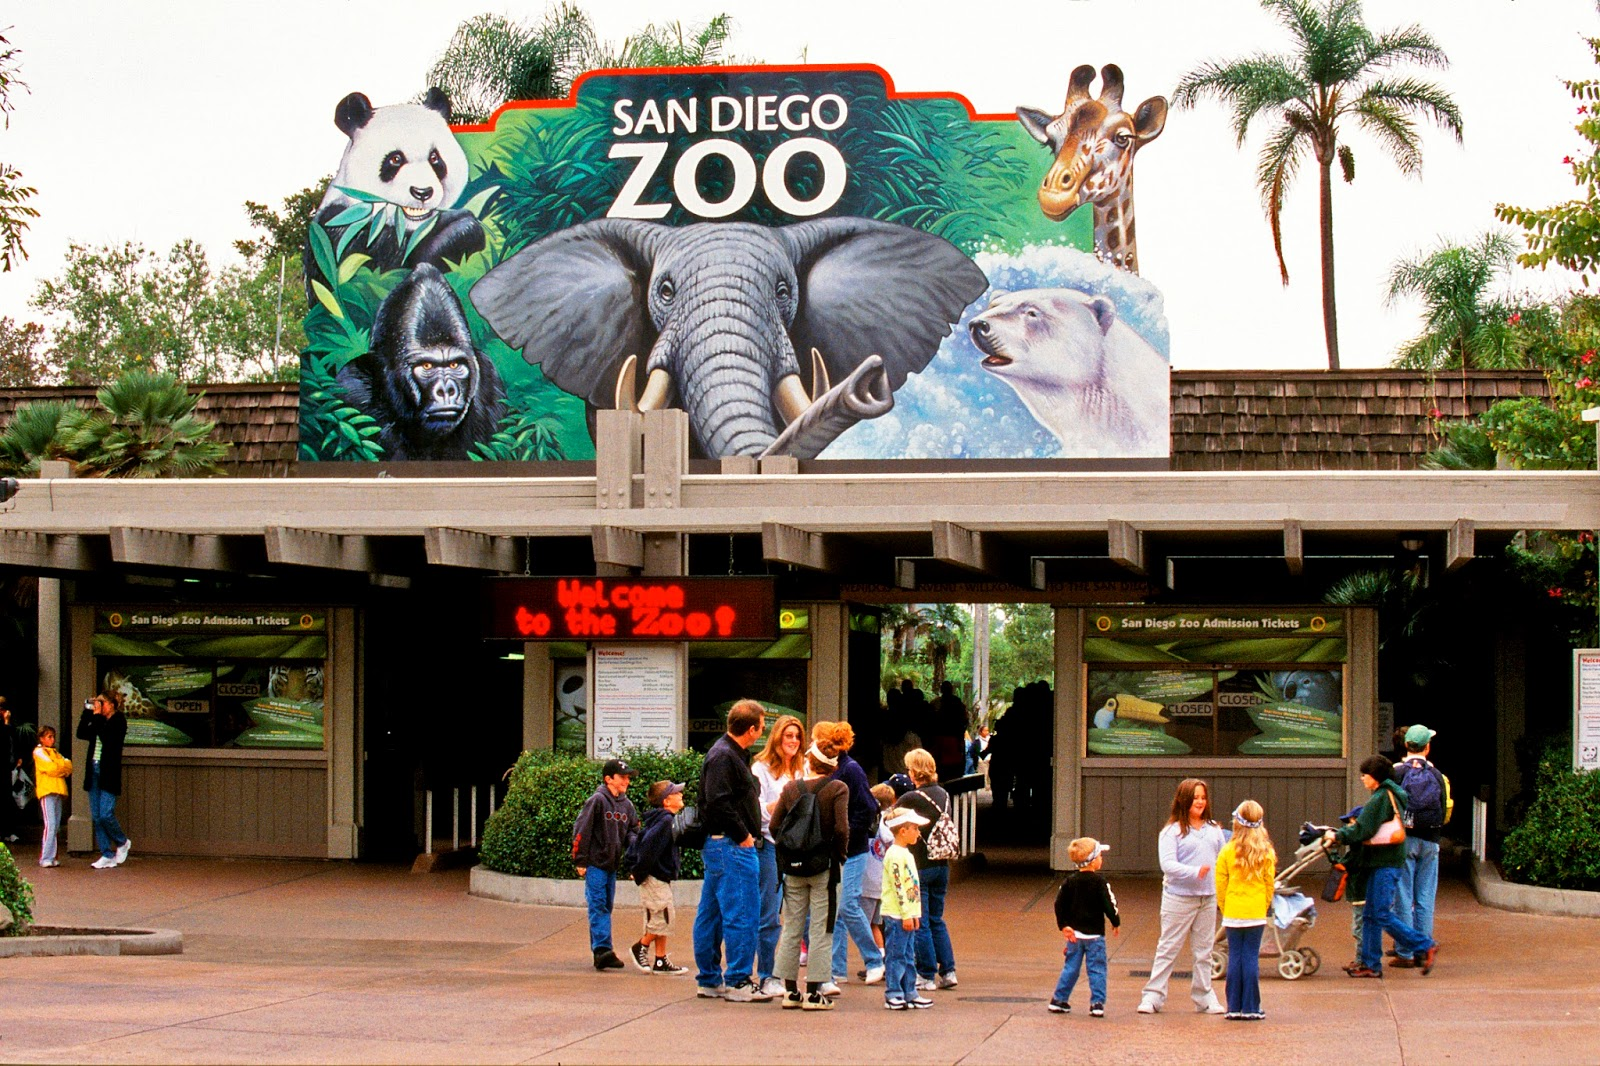 Zoo Dr San Diego Zoo San Diego, CA () The Zoo store really is amazing. Such unique and timeless gifts and keepsakes. From goofy animal themed kitchen utensils to hand crafted art, you will surely find something for everyone here.4/4(6).